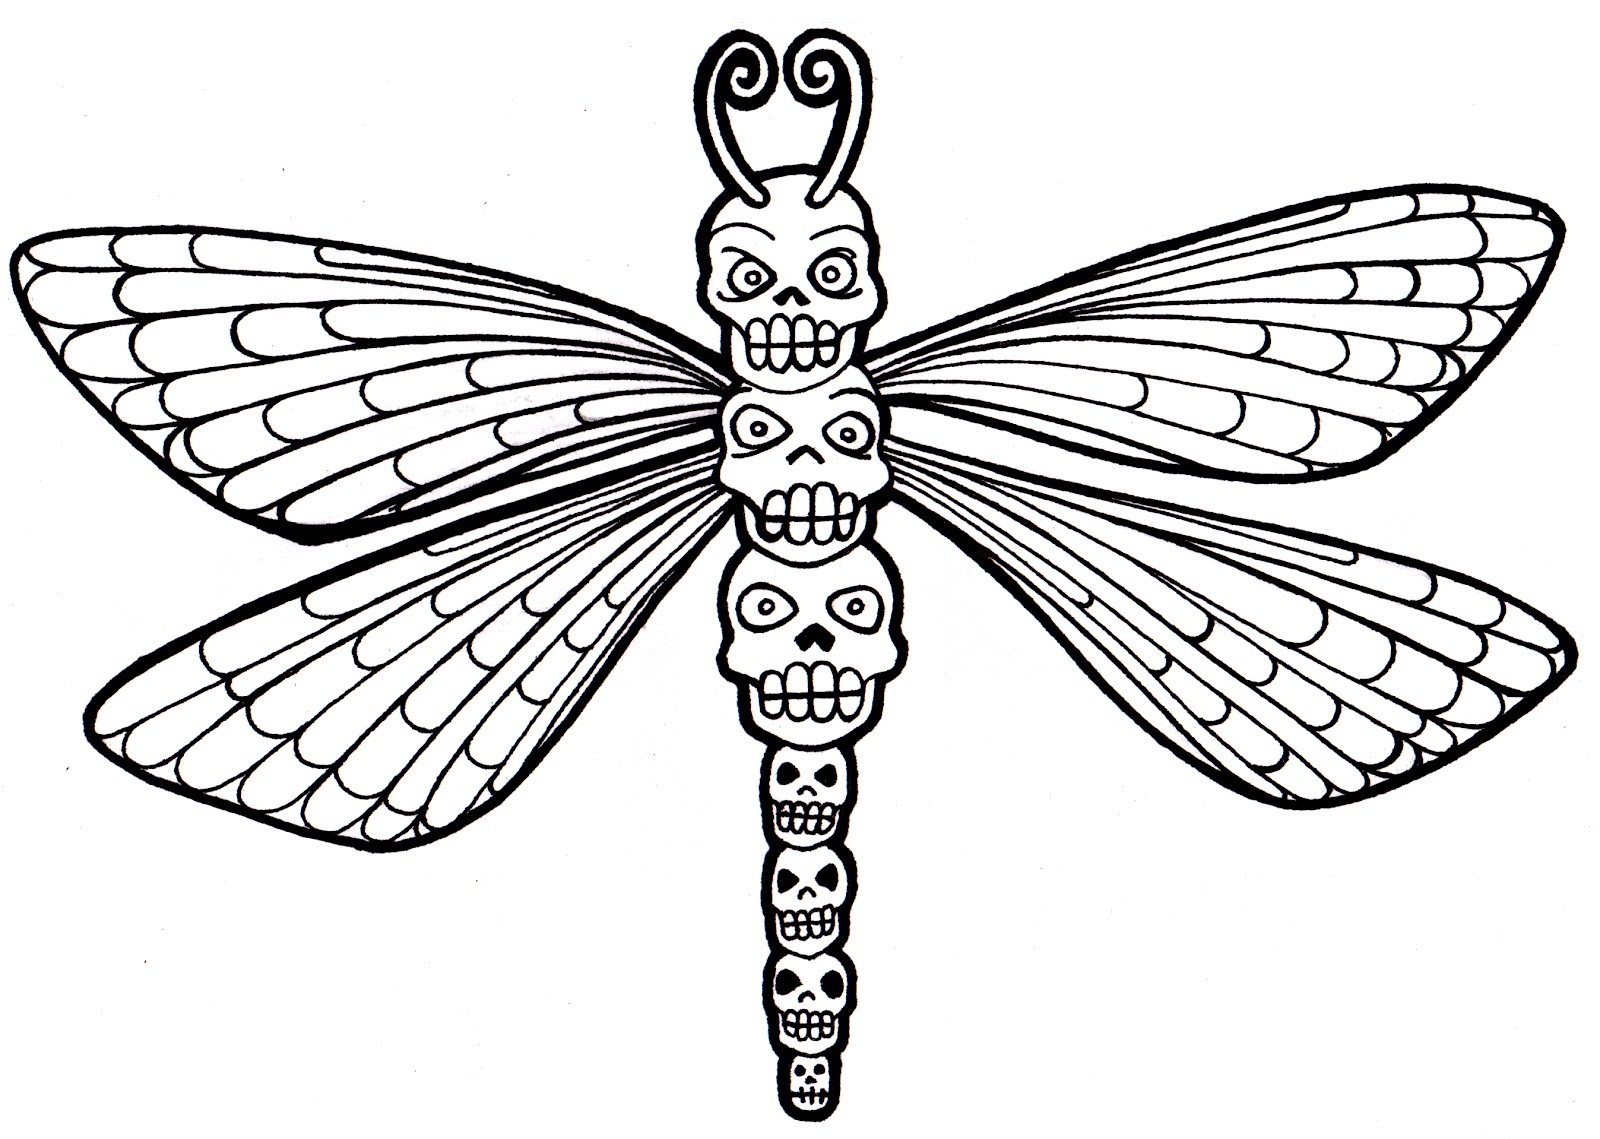 dragonfly pictures coloring pages - photo#25